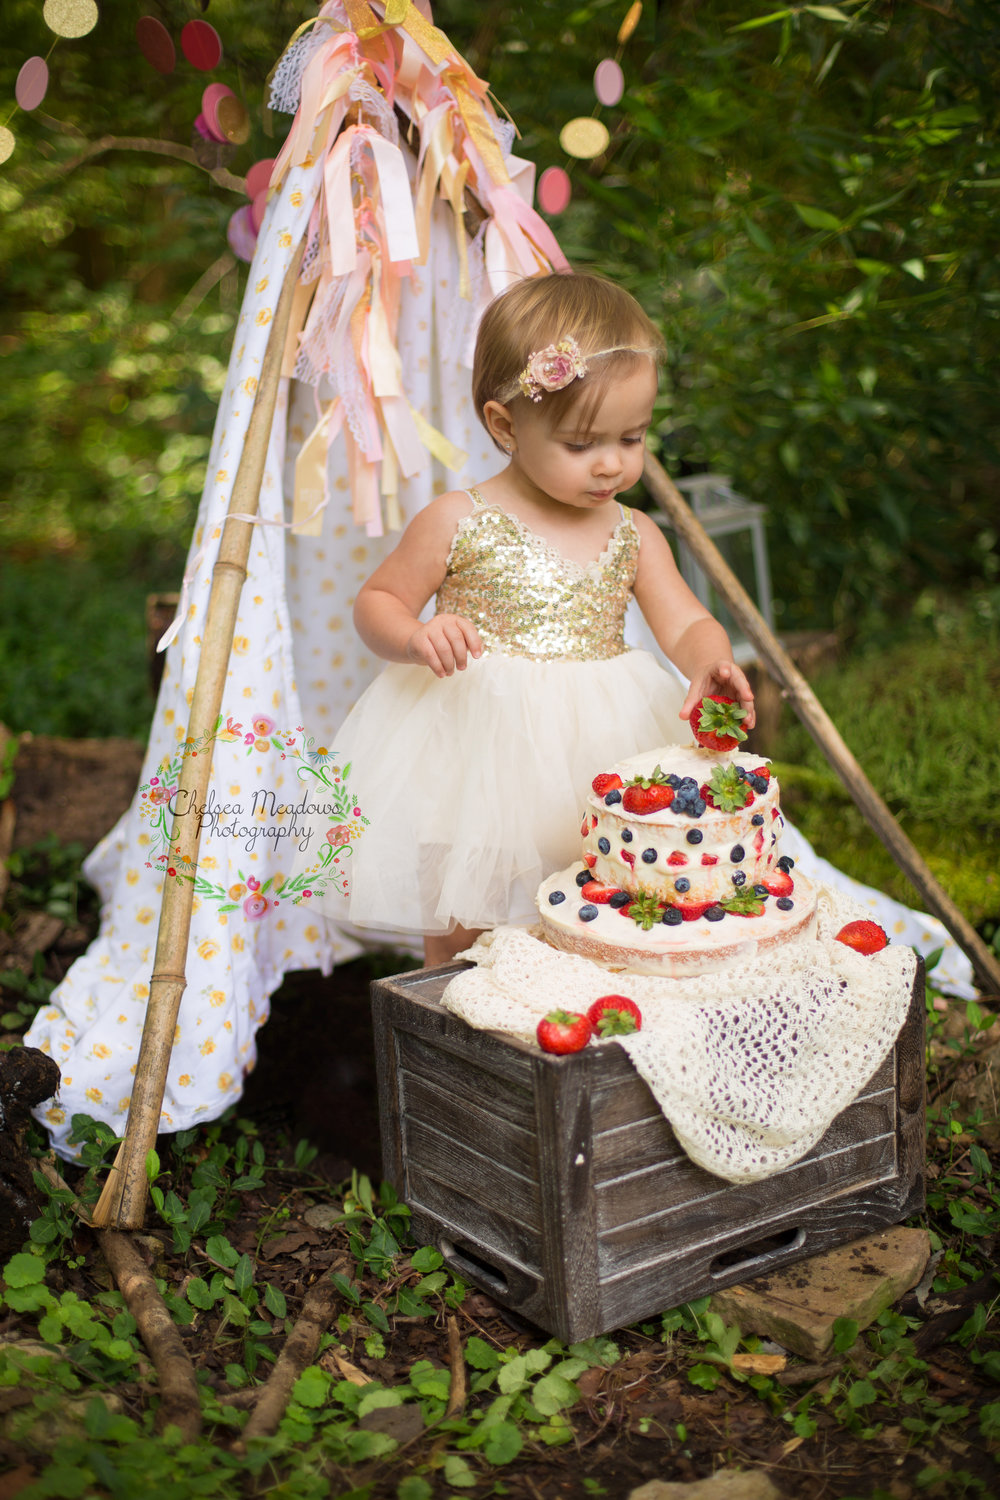 Paisley First Birthay Cake Smash - Nashville Family Photographer - Chelsea Meadows Photography (18).jpg